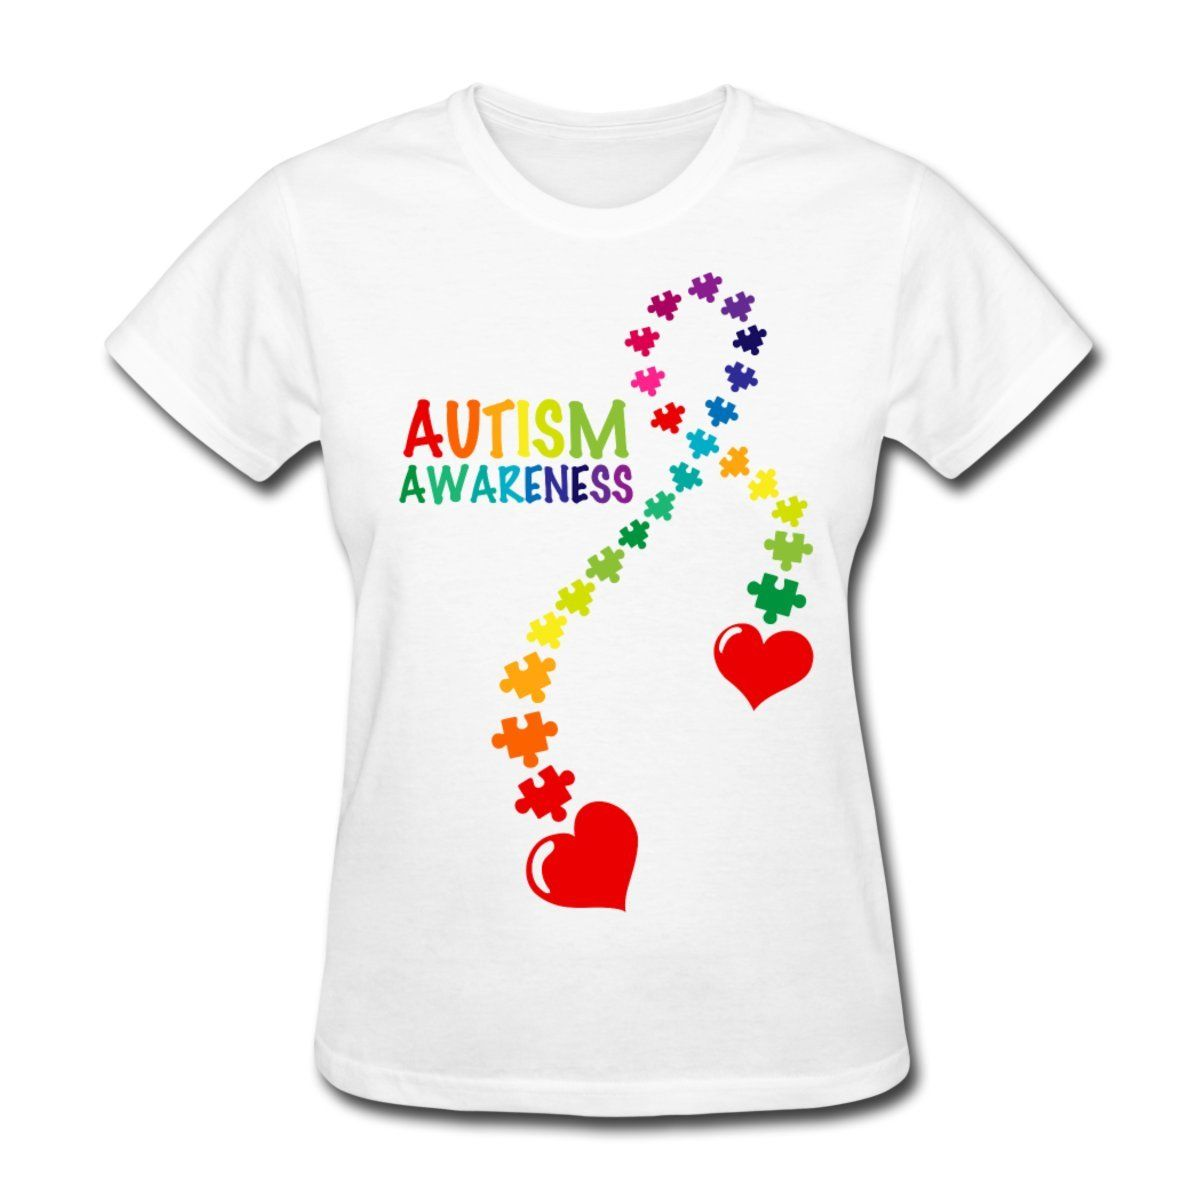 Design your t shirt and sell - Best Hot Sell Women S Tees Summer Clothing Crew Neck Autism Awareness Ribbon Short Design T Shirts For Women Make Your Own Shirt Product